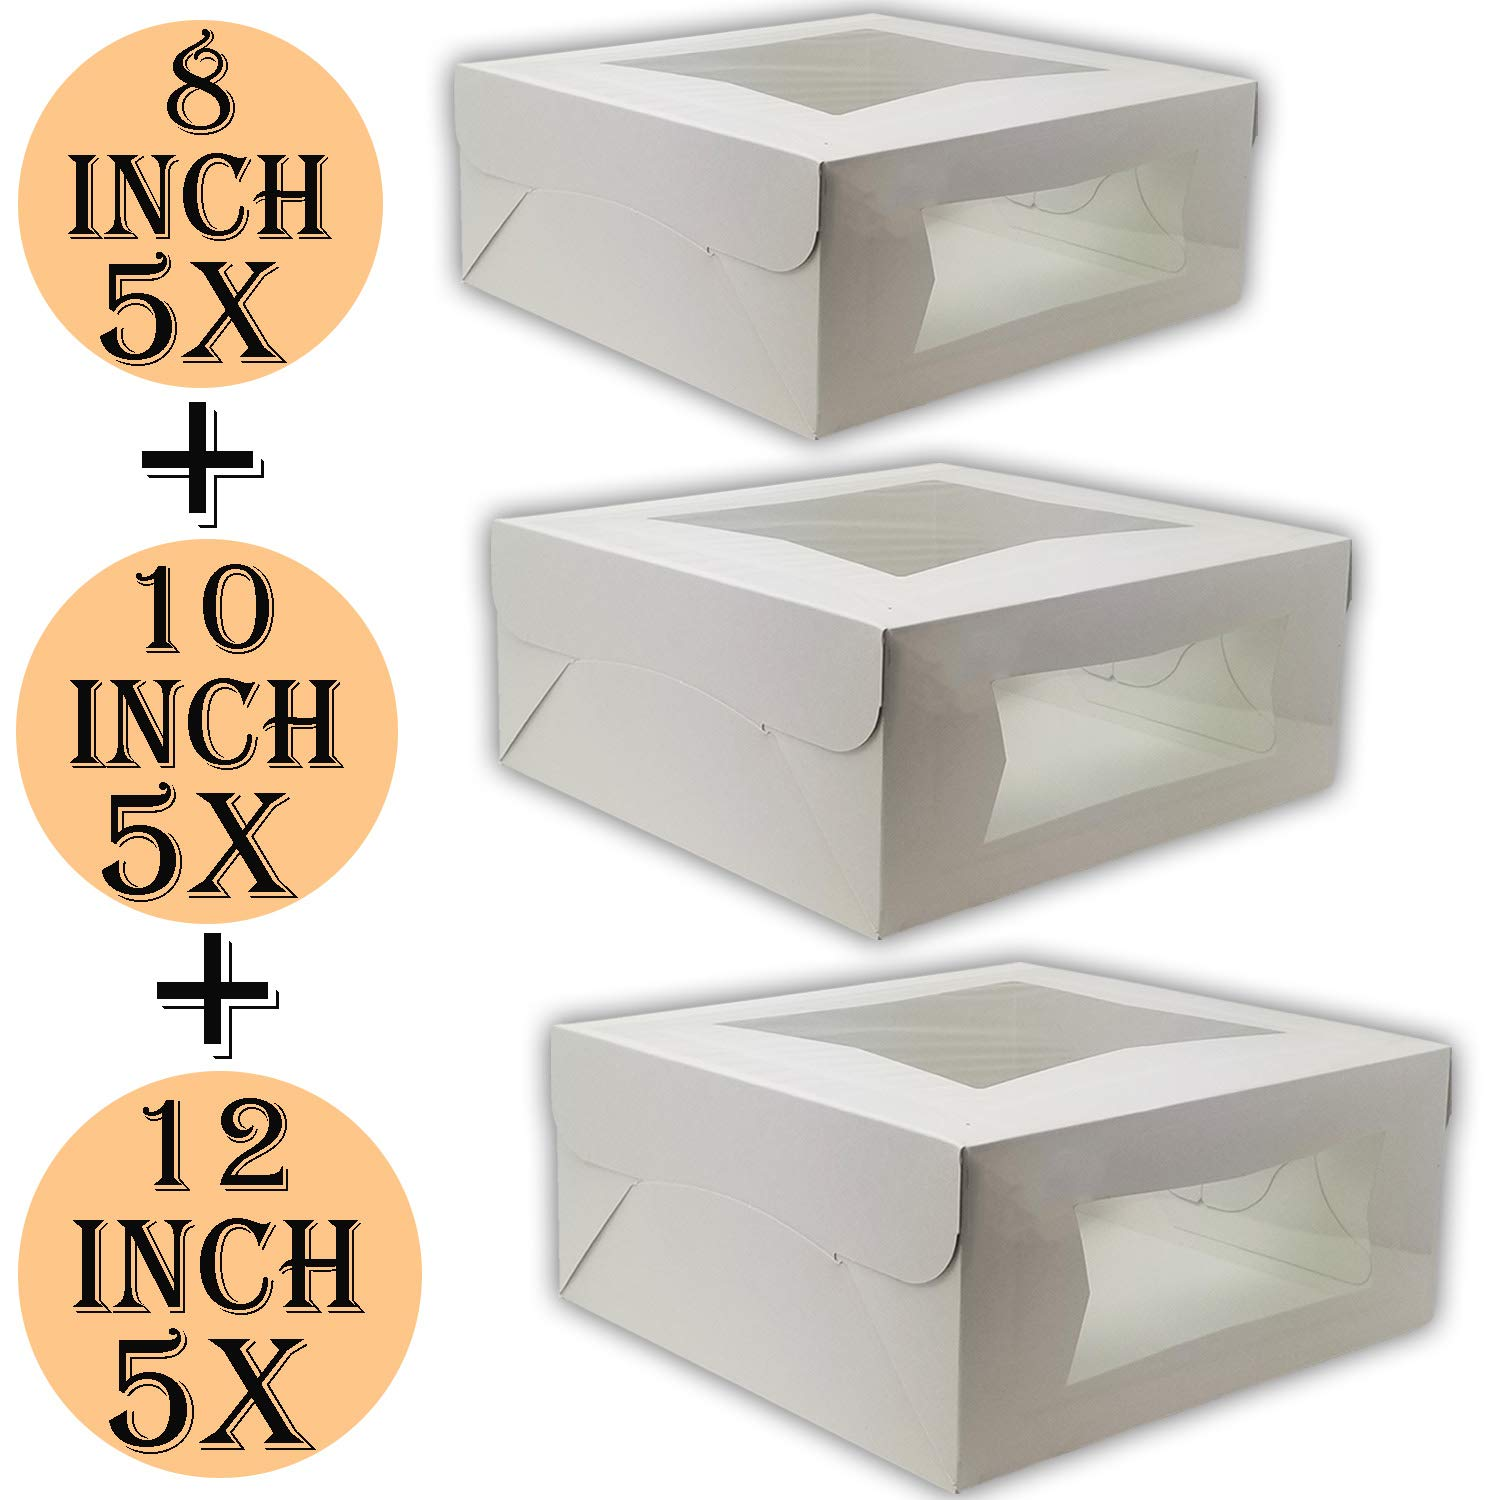 Cake Boxes 12 x 12 x 5, Cake Boxes 10 x 10 x 5 and Cake Boxes 8 x 8 x 4, Bakery Box Has Double Window, Cake Supplies, 5 Pack of Each.